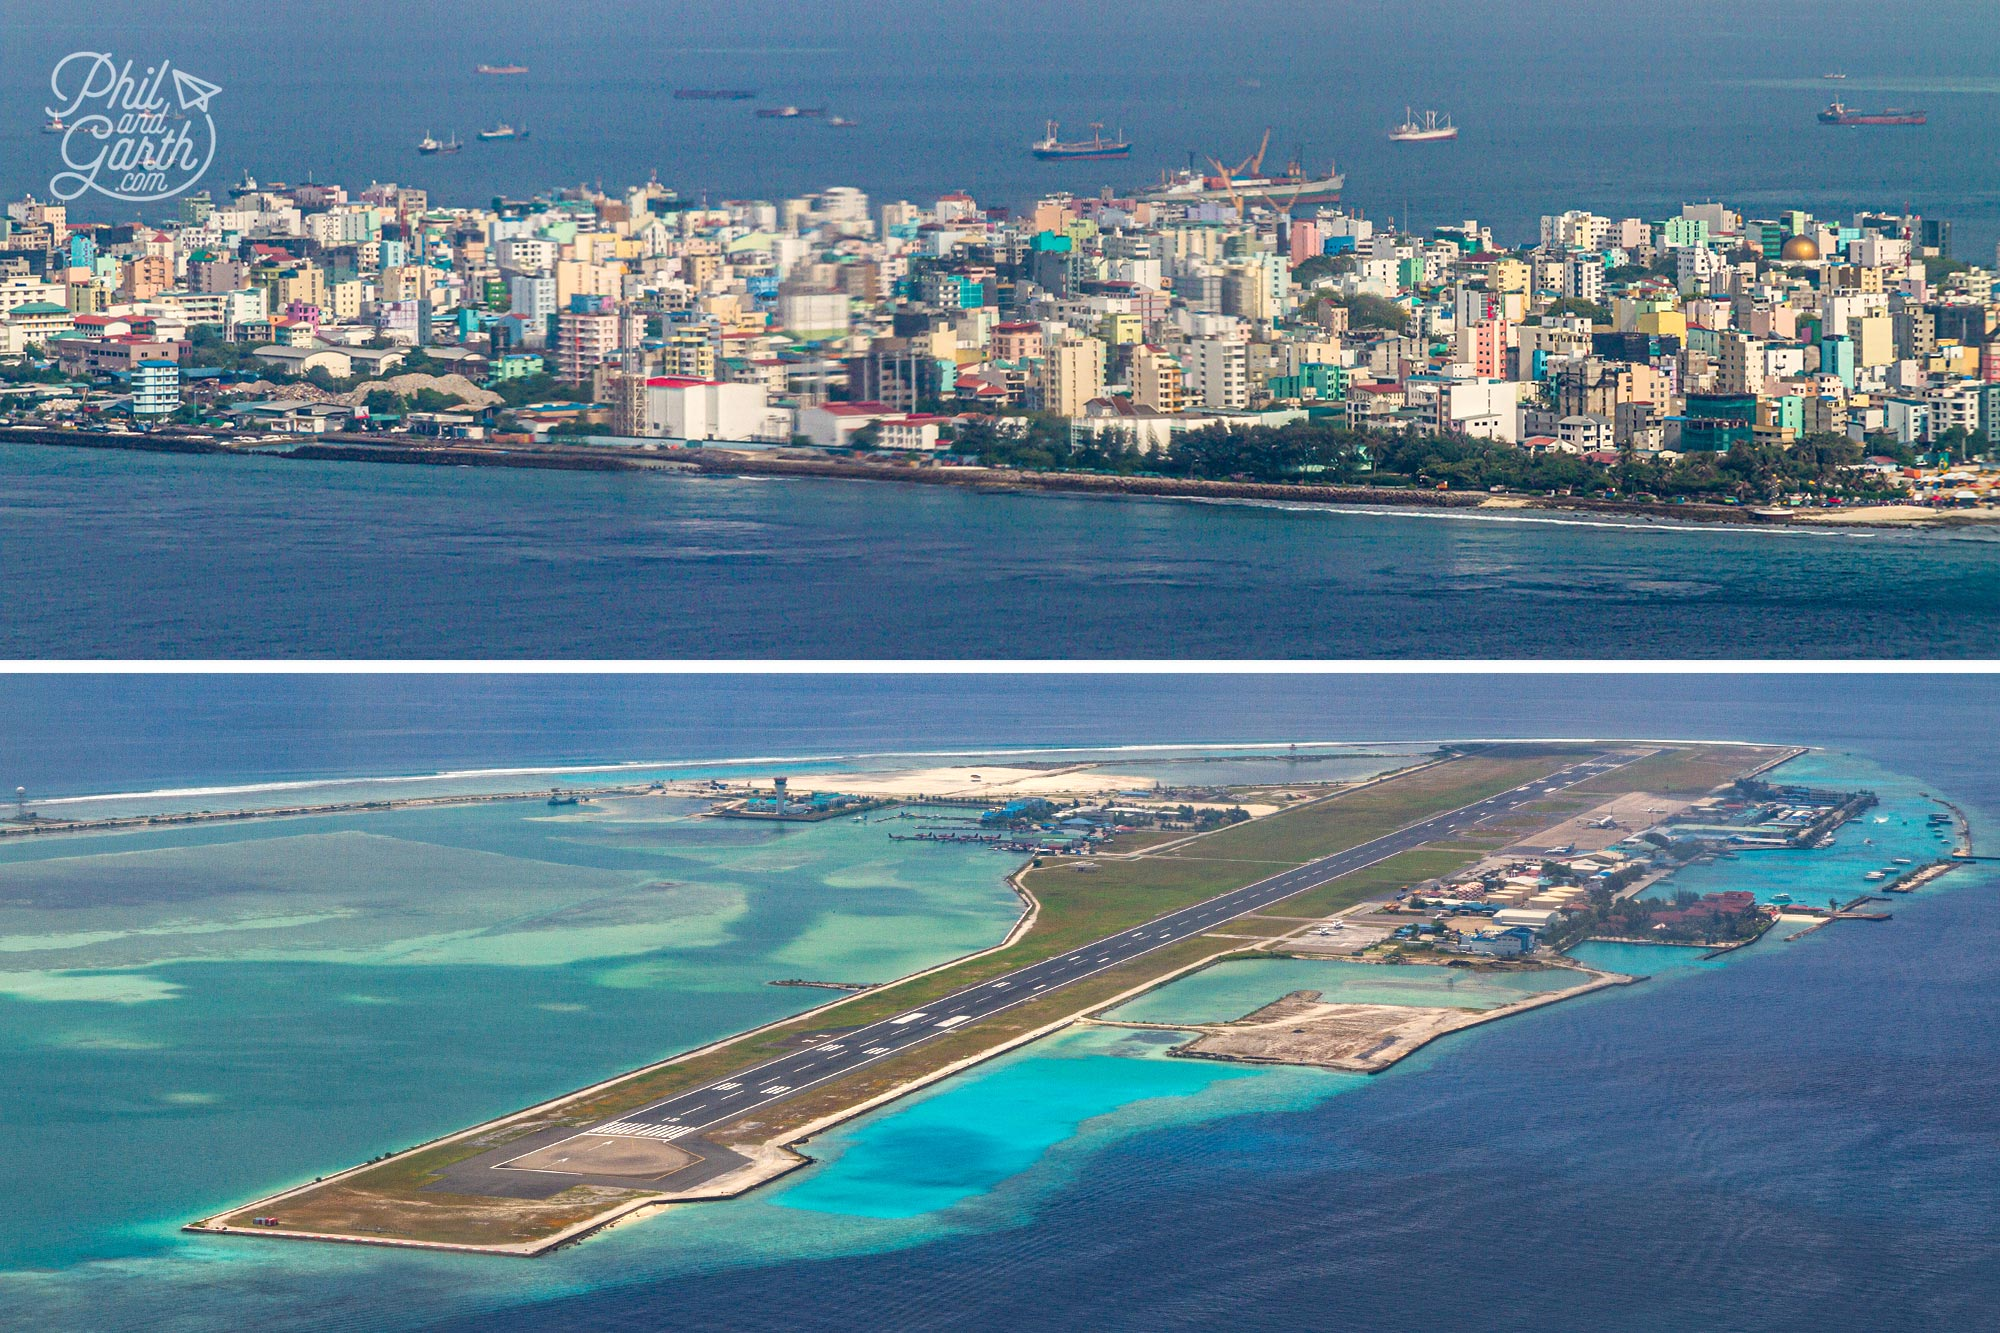 Malé is the capital of the Maldives located on one of the world's most densely populated islands